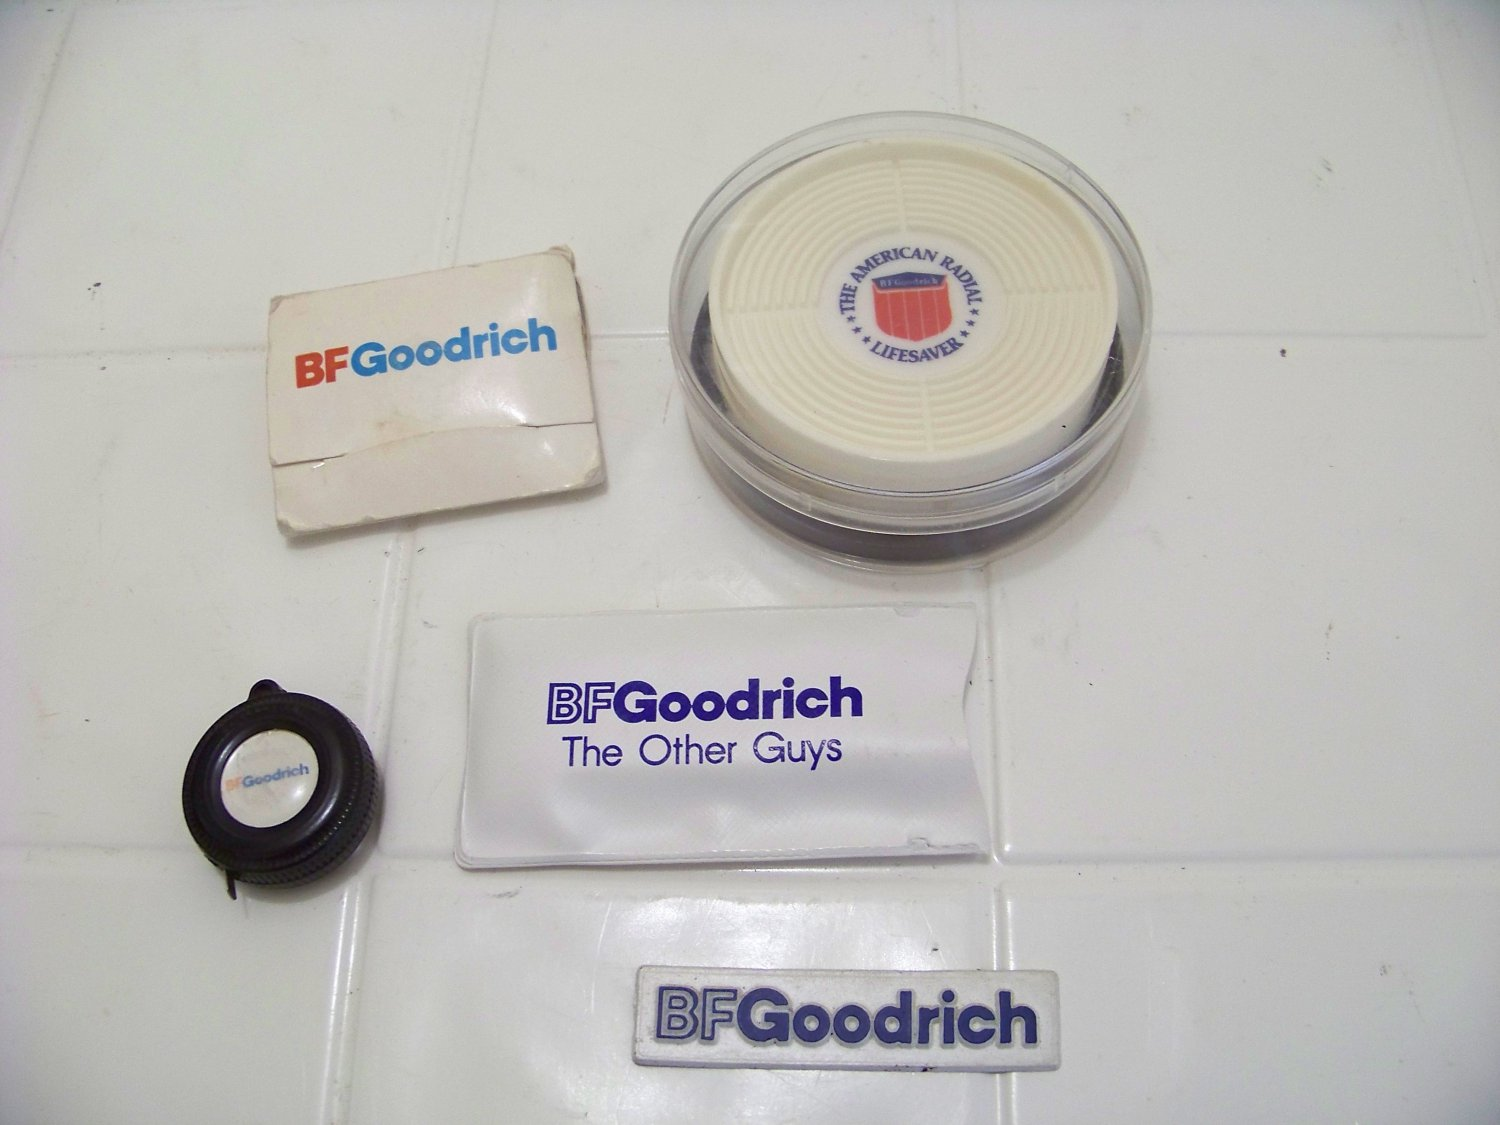 B.F. Goodrich advertising tire tape measure key chain magnet coasters golf tee rain hood